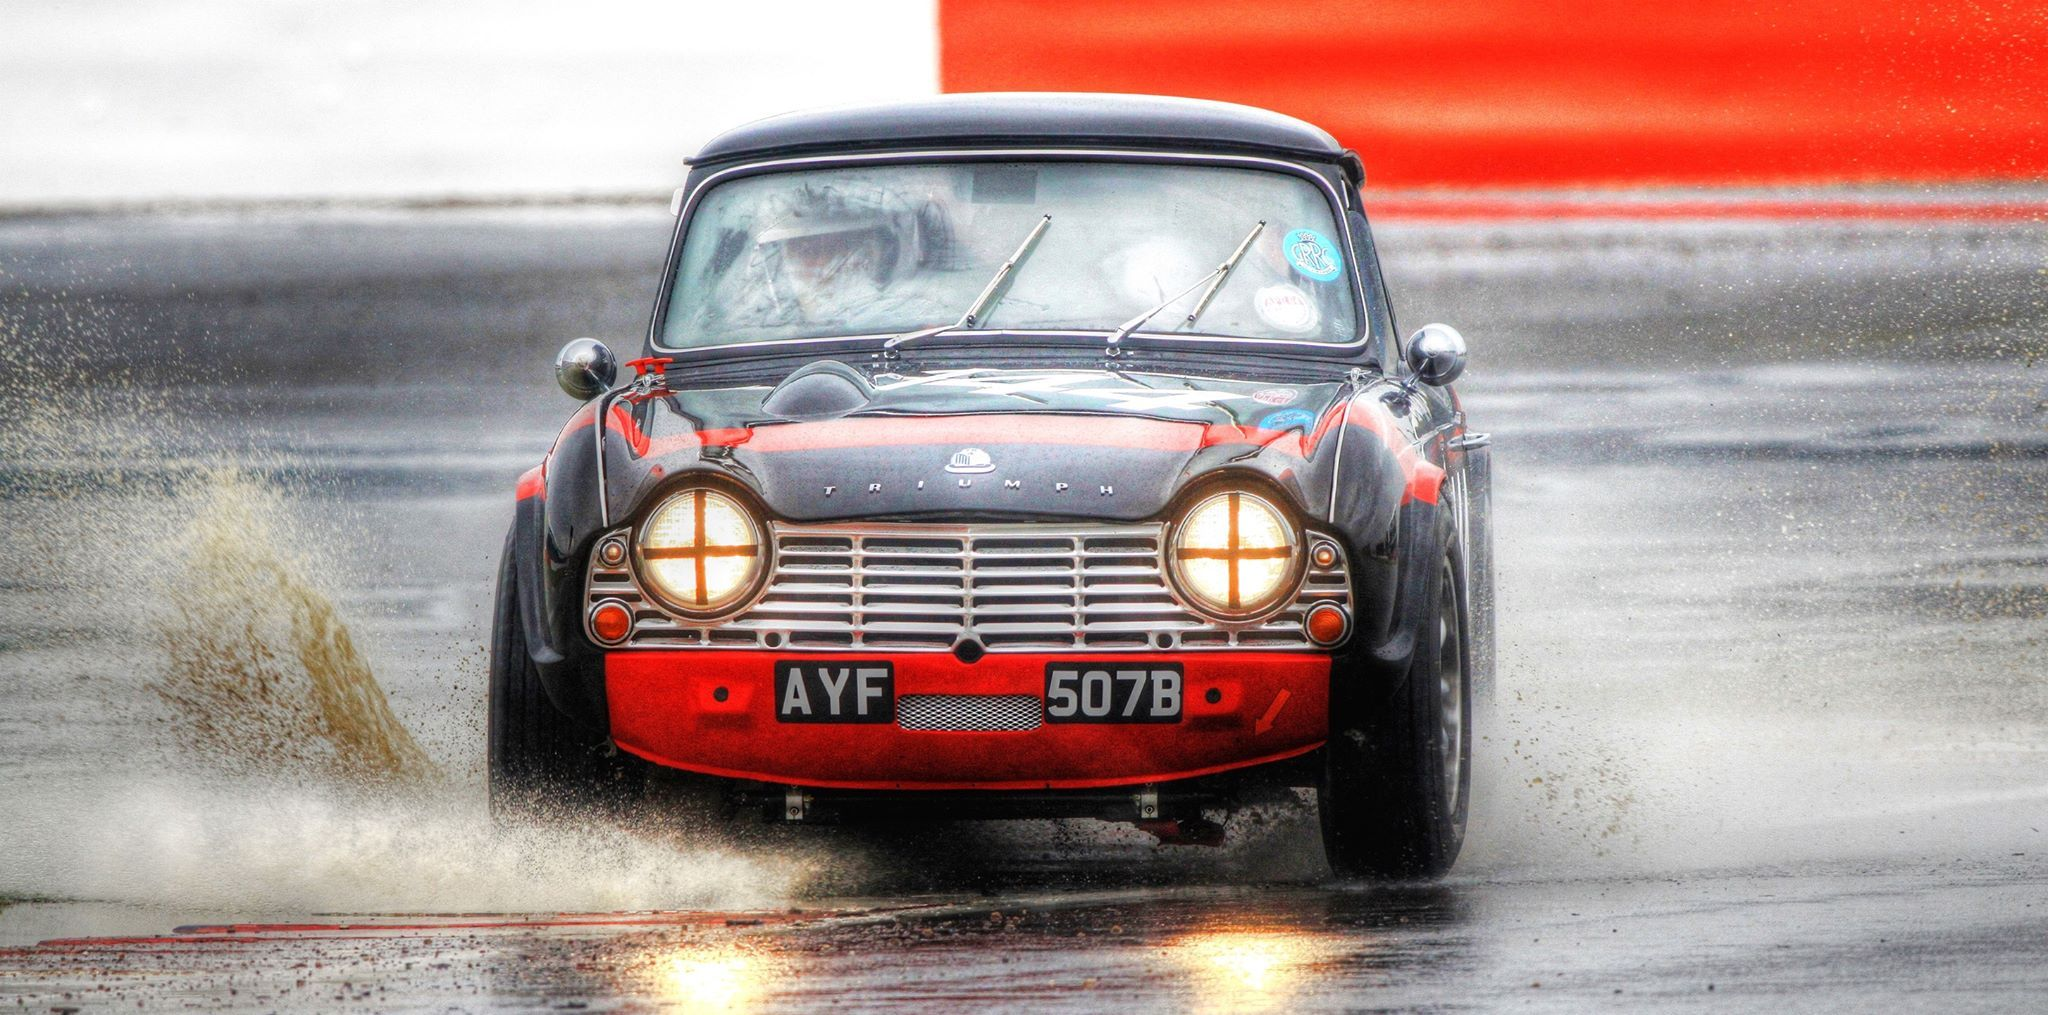 This pic really is loaded with energy. One TR4 under heavy circumstances in the Equipe GTS at Brands Hatch in 2015. © Peter French.